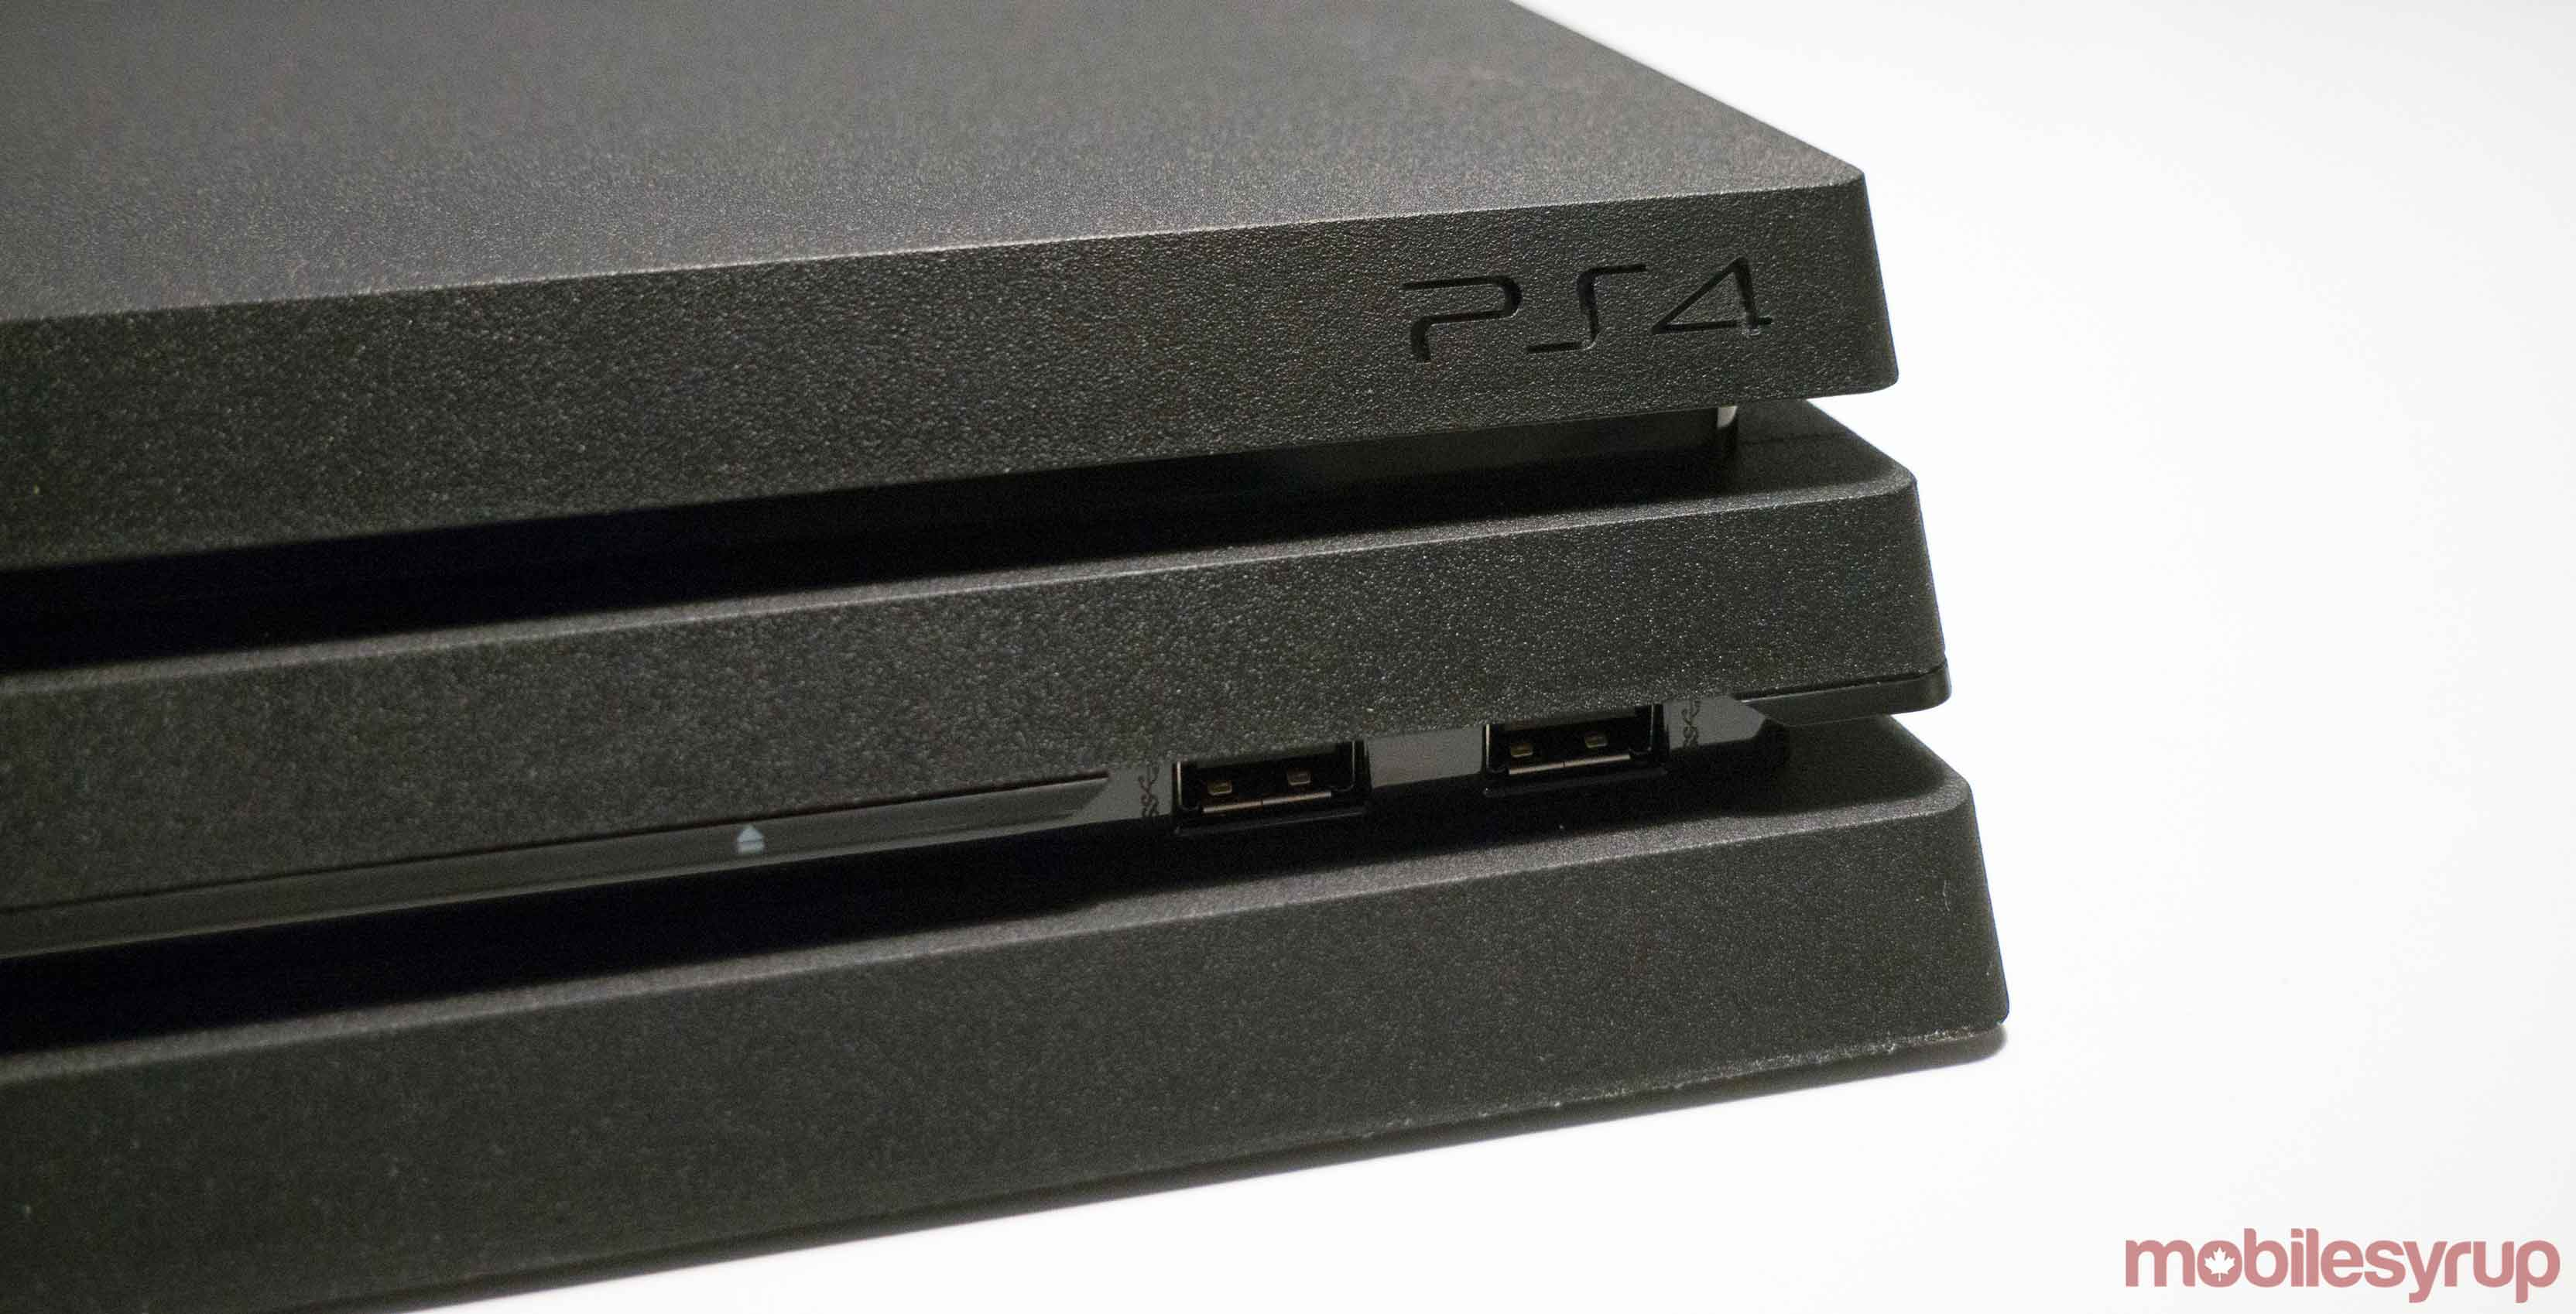 PlayStation 5 likely won't arrive until 2020